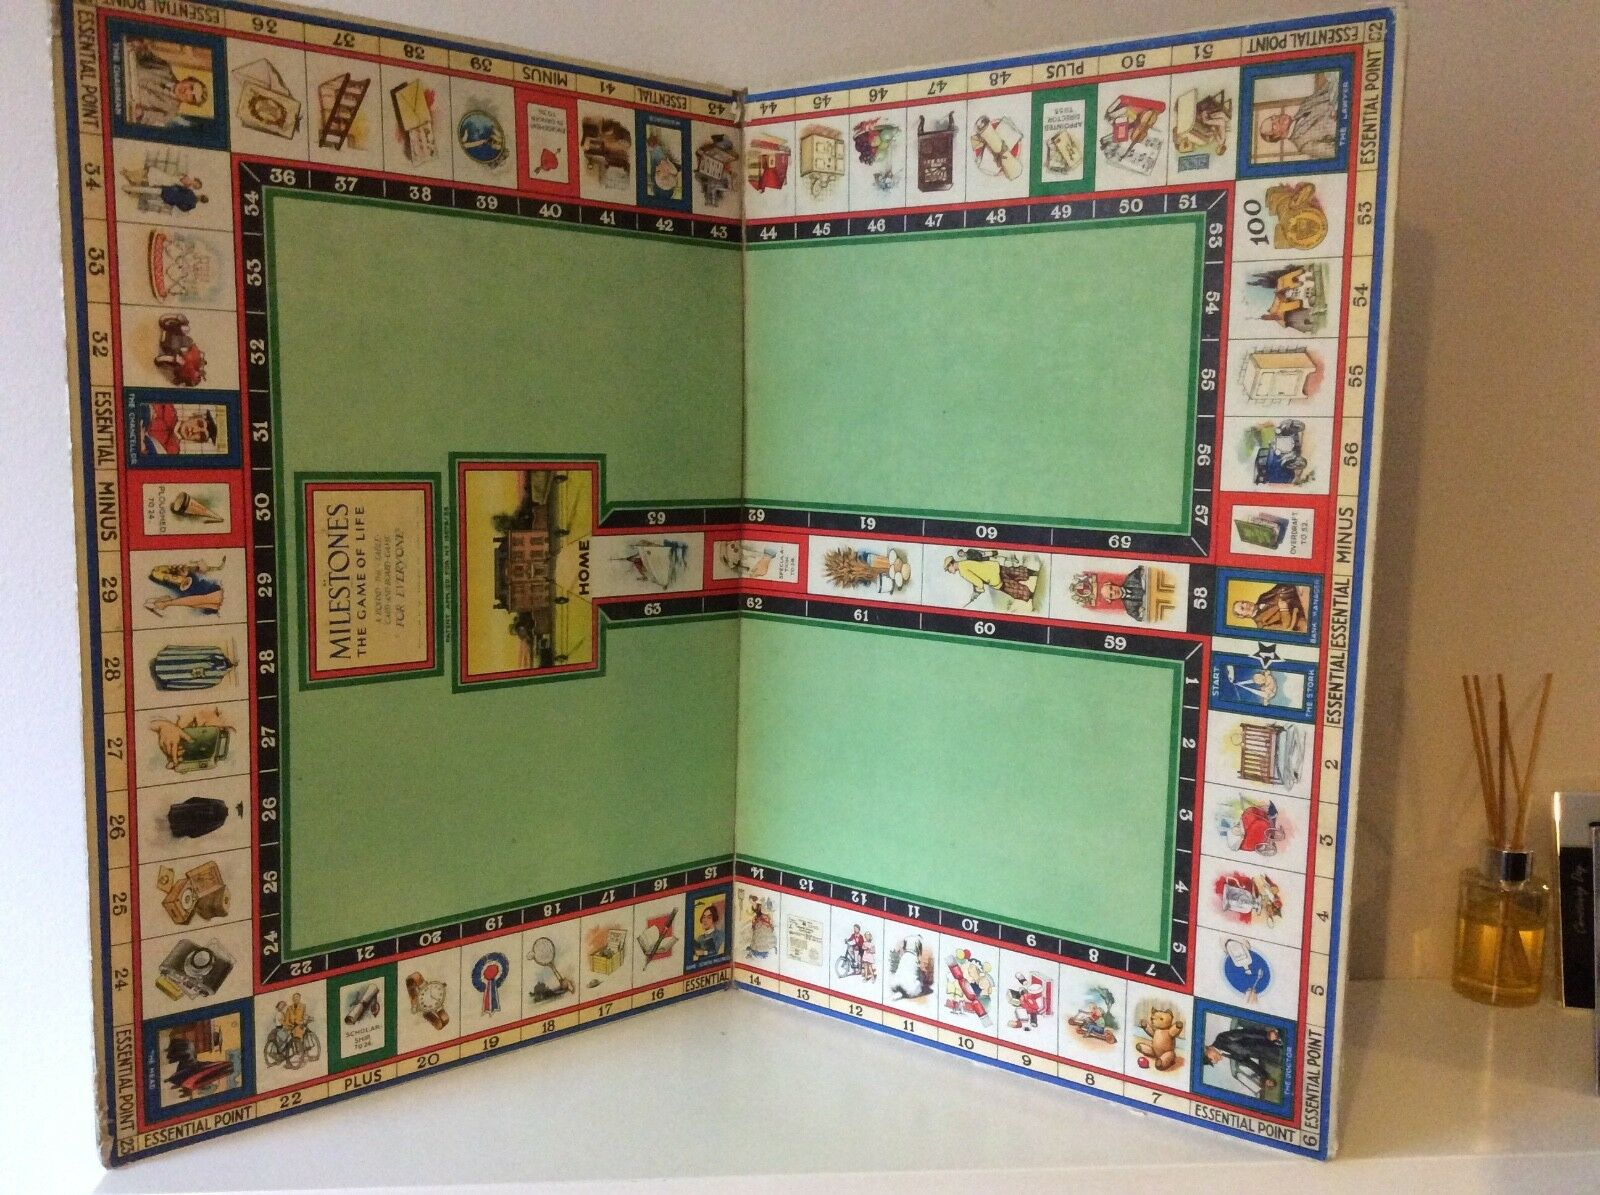 VINTAGE 1938 MILESTONE 'THE GAME OF LIFE' BOARD GAME BOARD ONLY